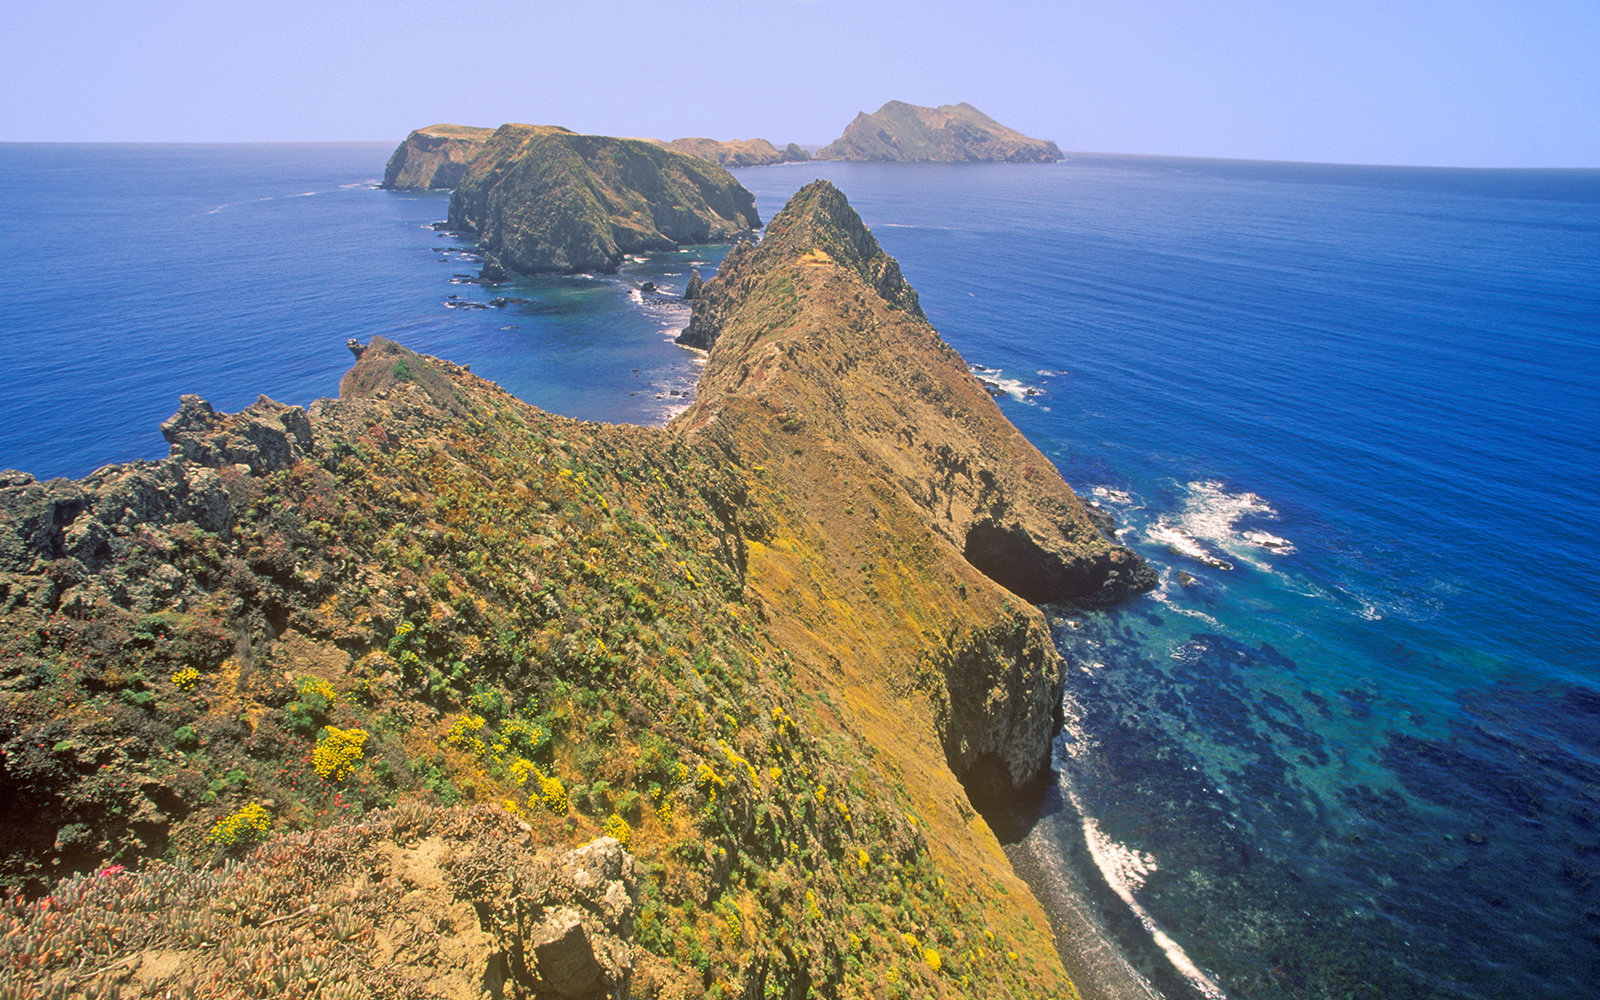 Inspiration Point on Anacapa Island, Channel Islands National Park, California (Photo by Visions of America/UIG via Getty Images)